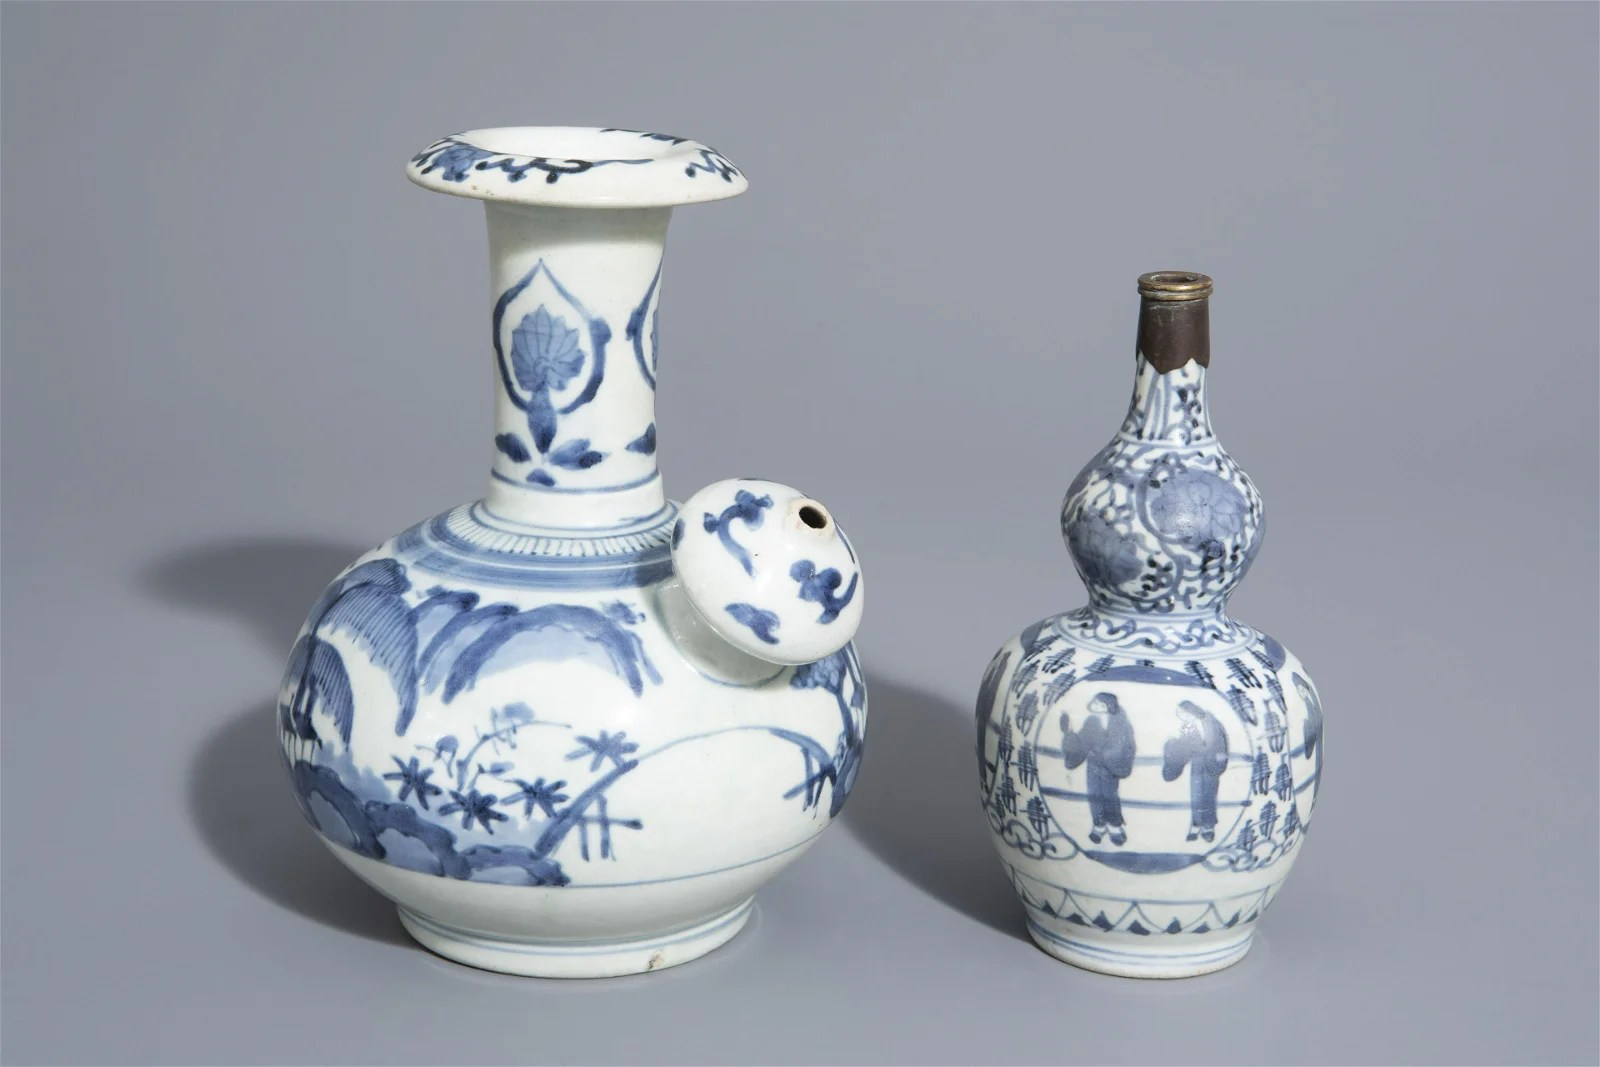 A Japanese blue and white kendi and a double gourd vase